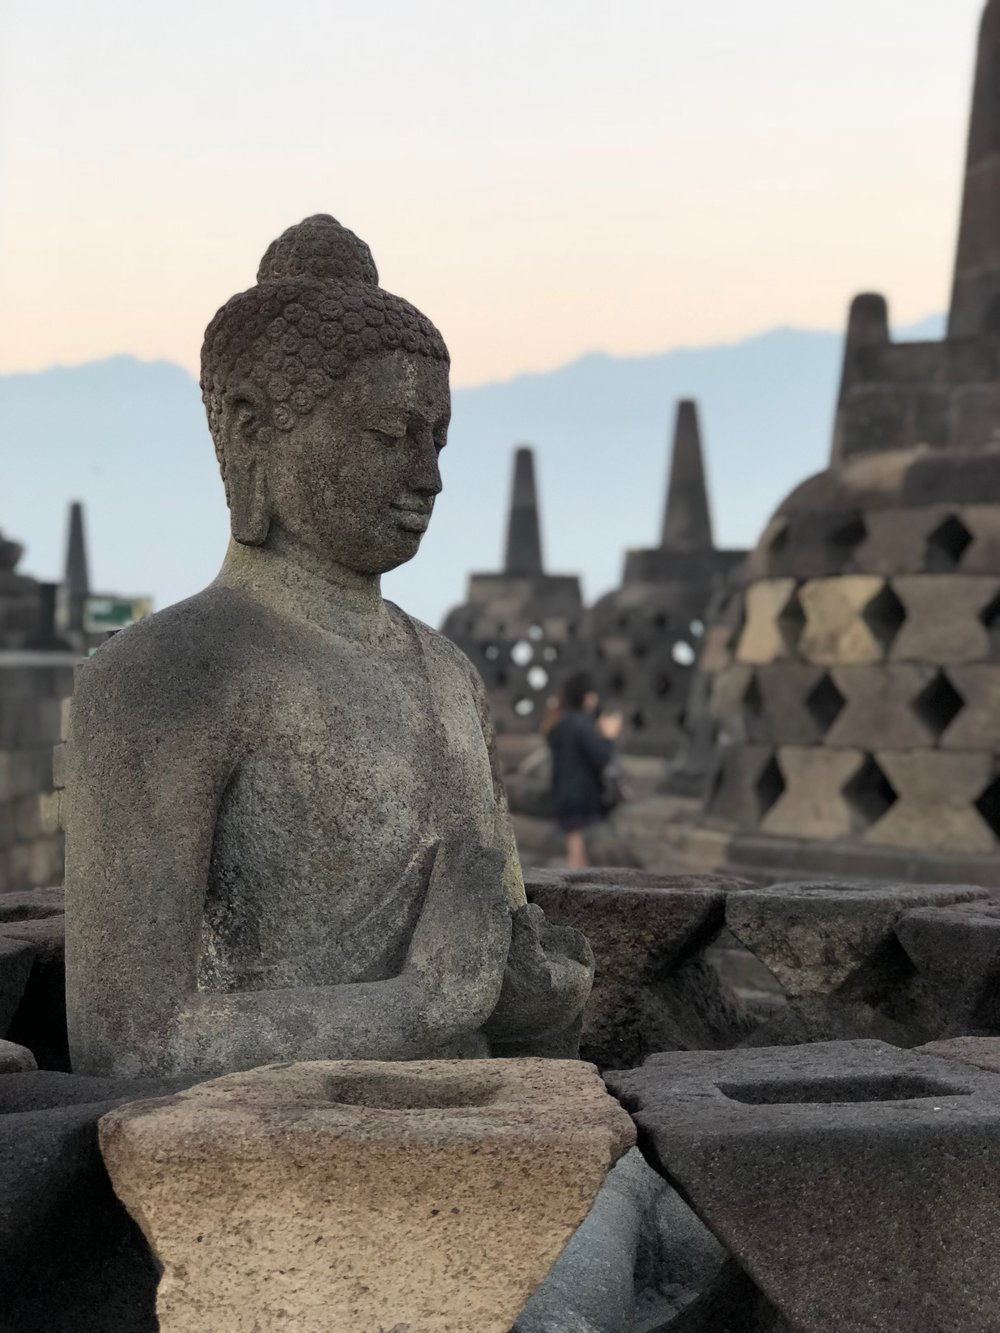 Only two of the 72 Buddha statues are uncovered on the temple's upper terrace